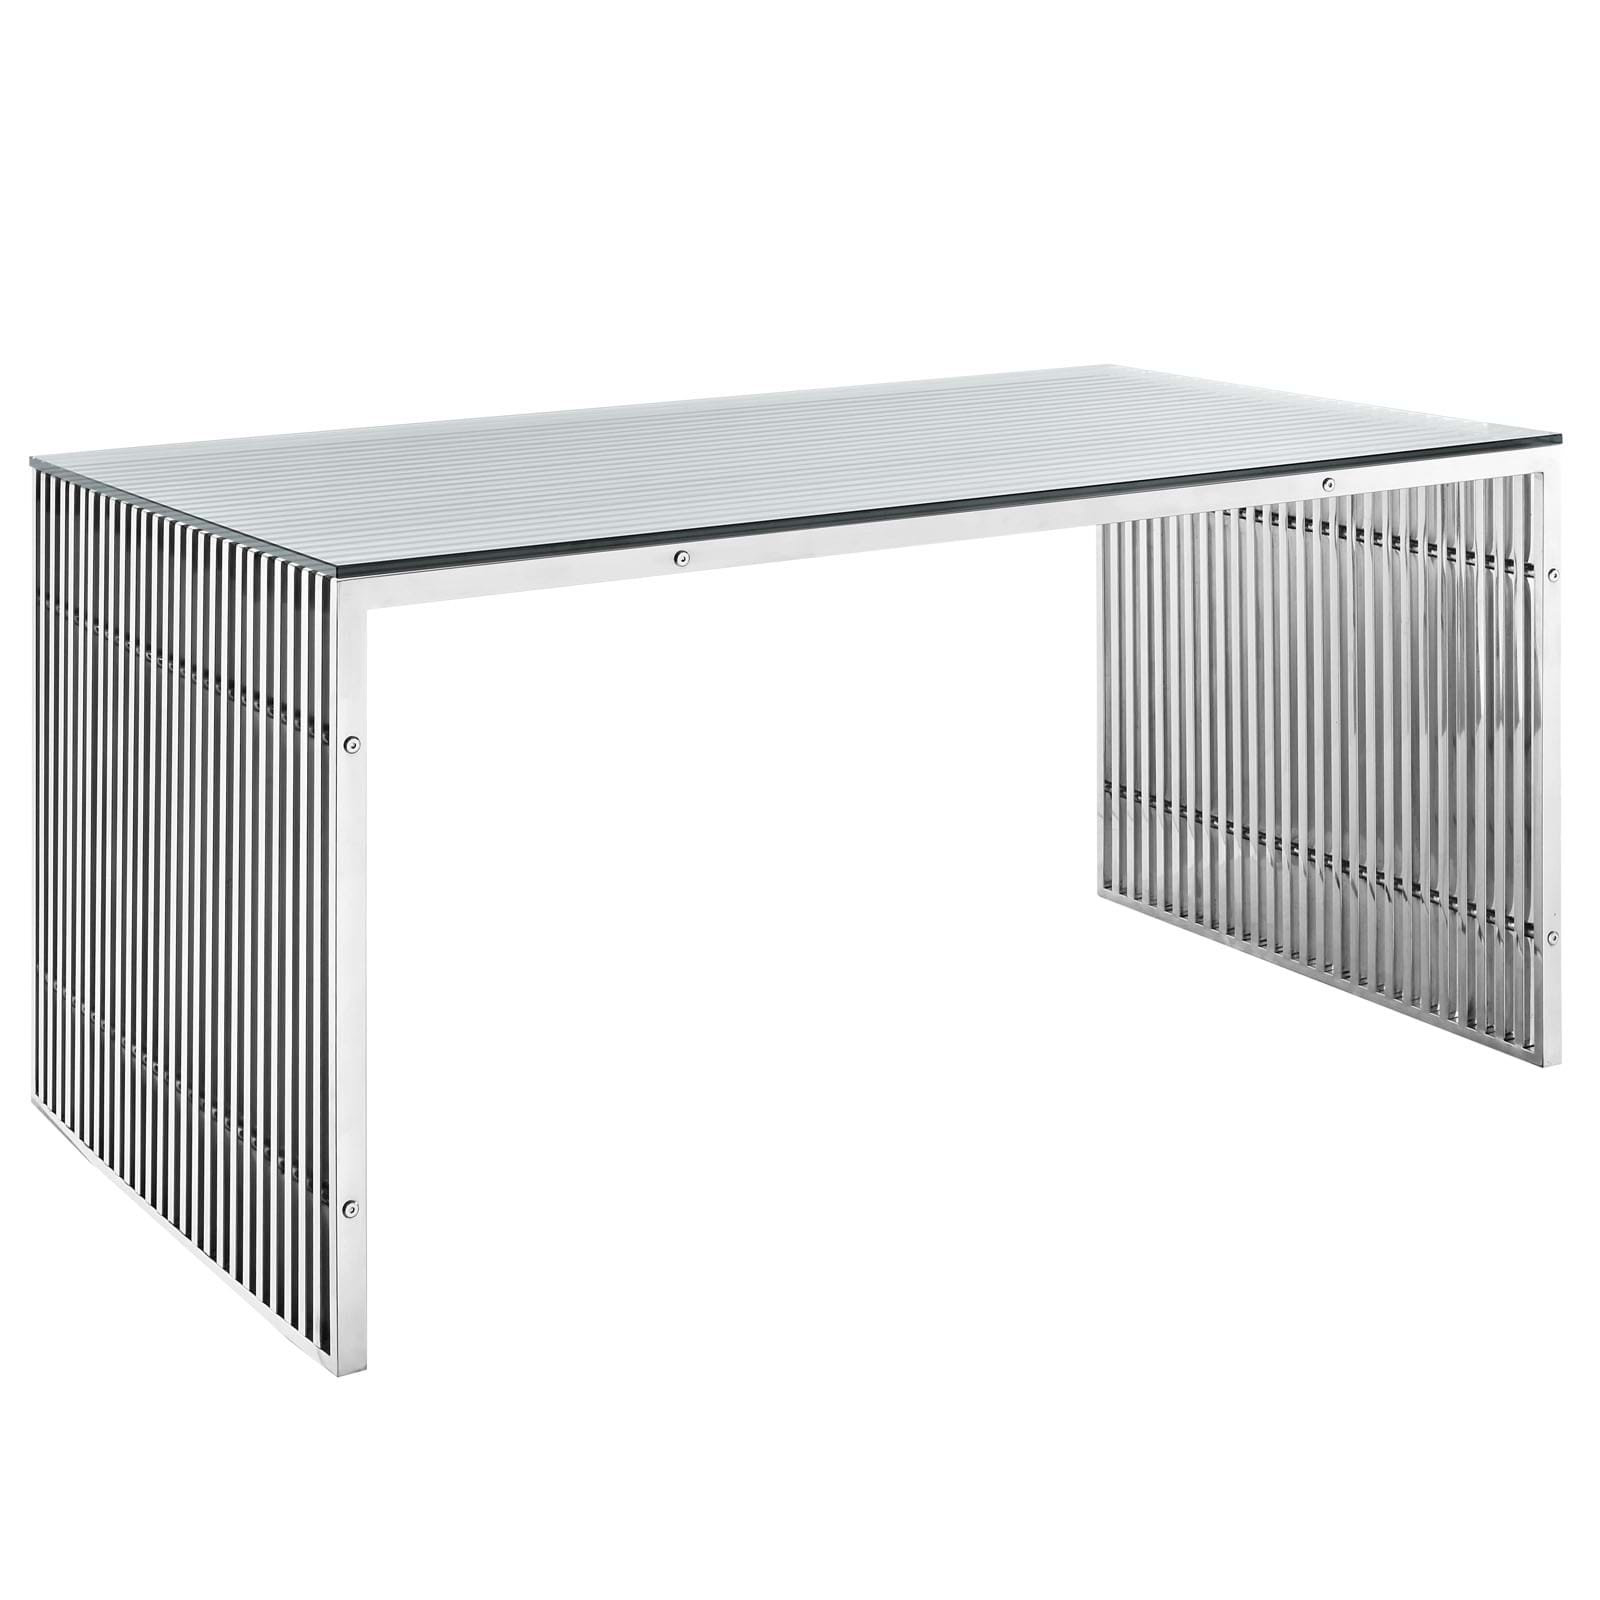 Gridiron Stainless Steel Dining Table